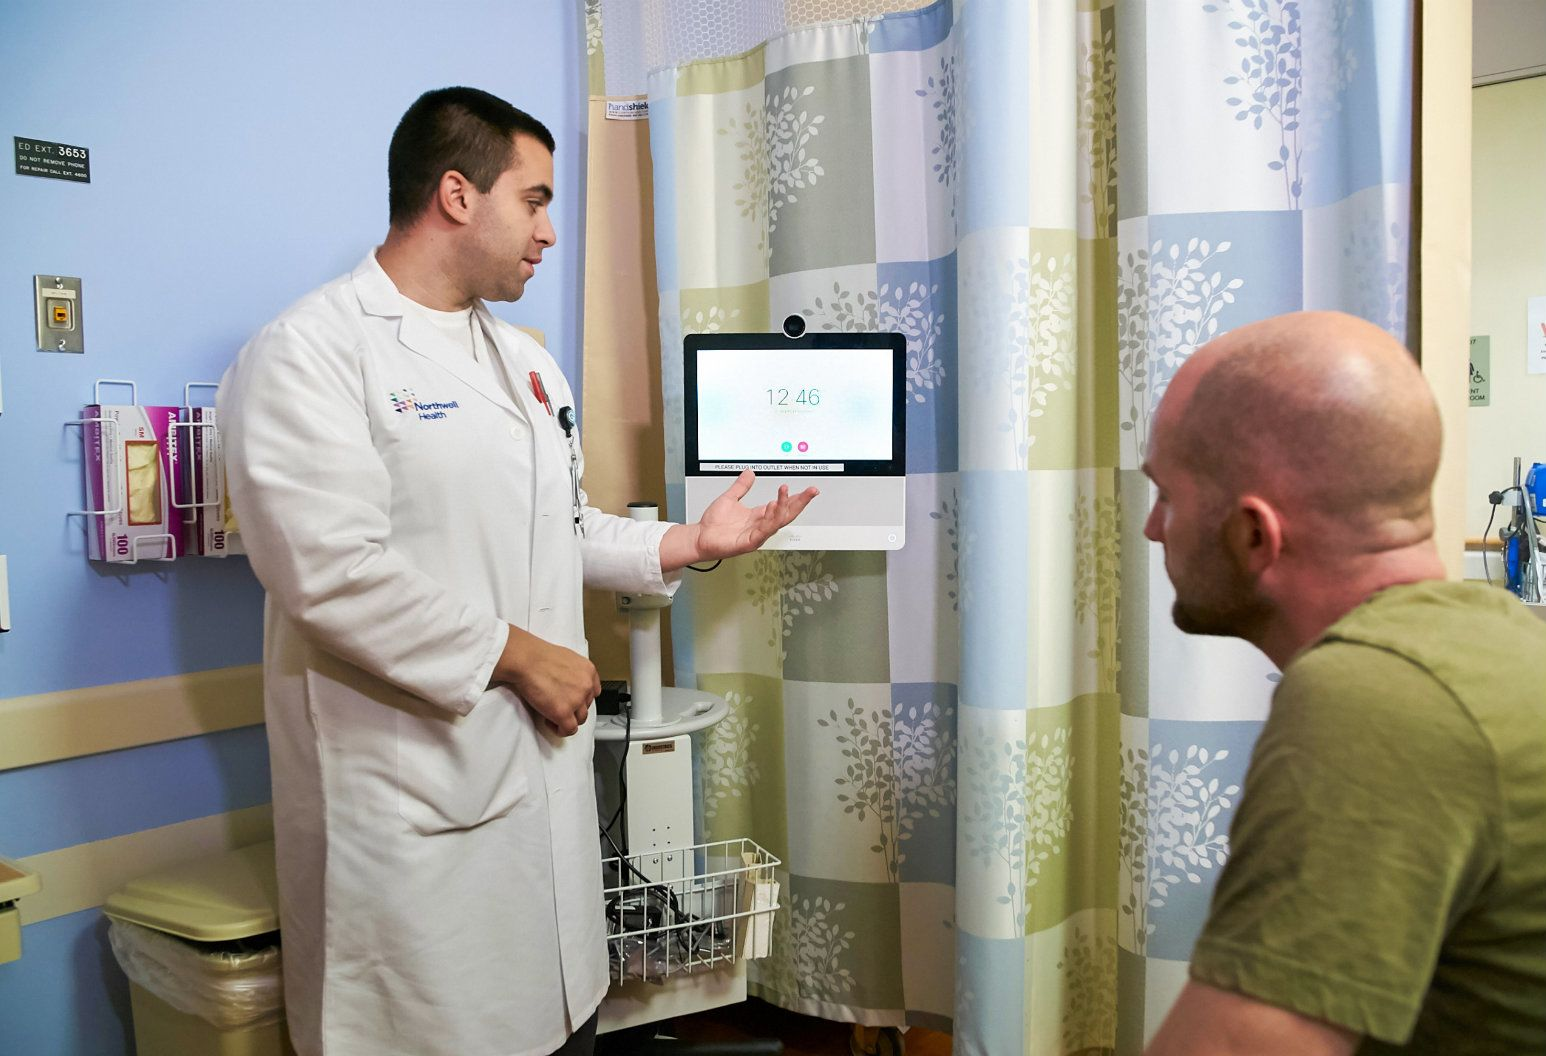 A health care employee explains TeleHealth technology to a behavioral health patient in a brightly-colored hospital room. The telehealth machine is a large tablet-sized screen with a camera mounted on a swiveling arm. Telehealth technology promises 24-hour access to care for patients wherever and whenever you need it.